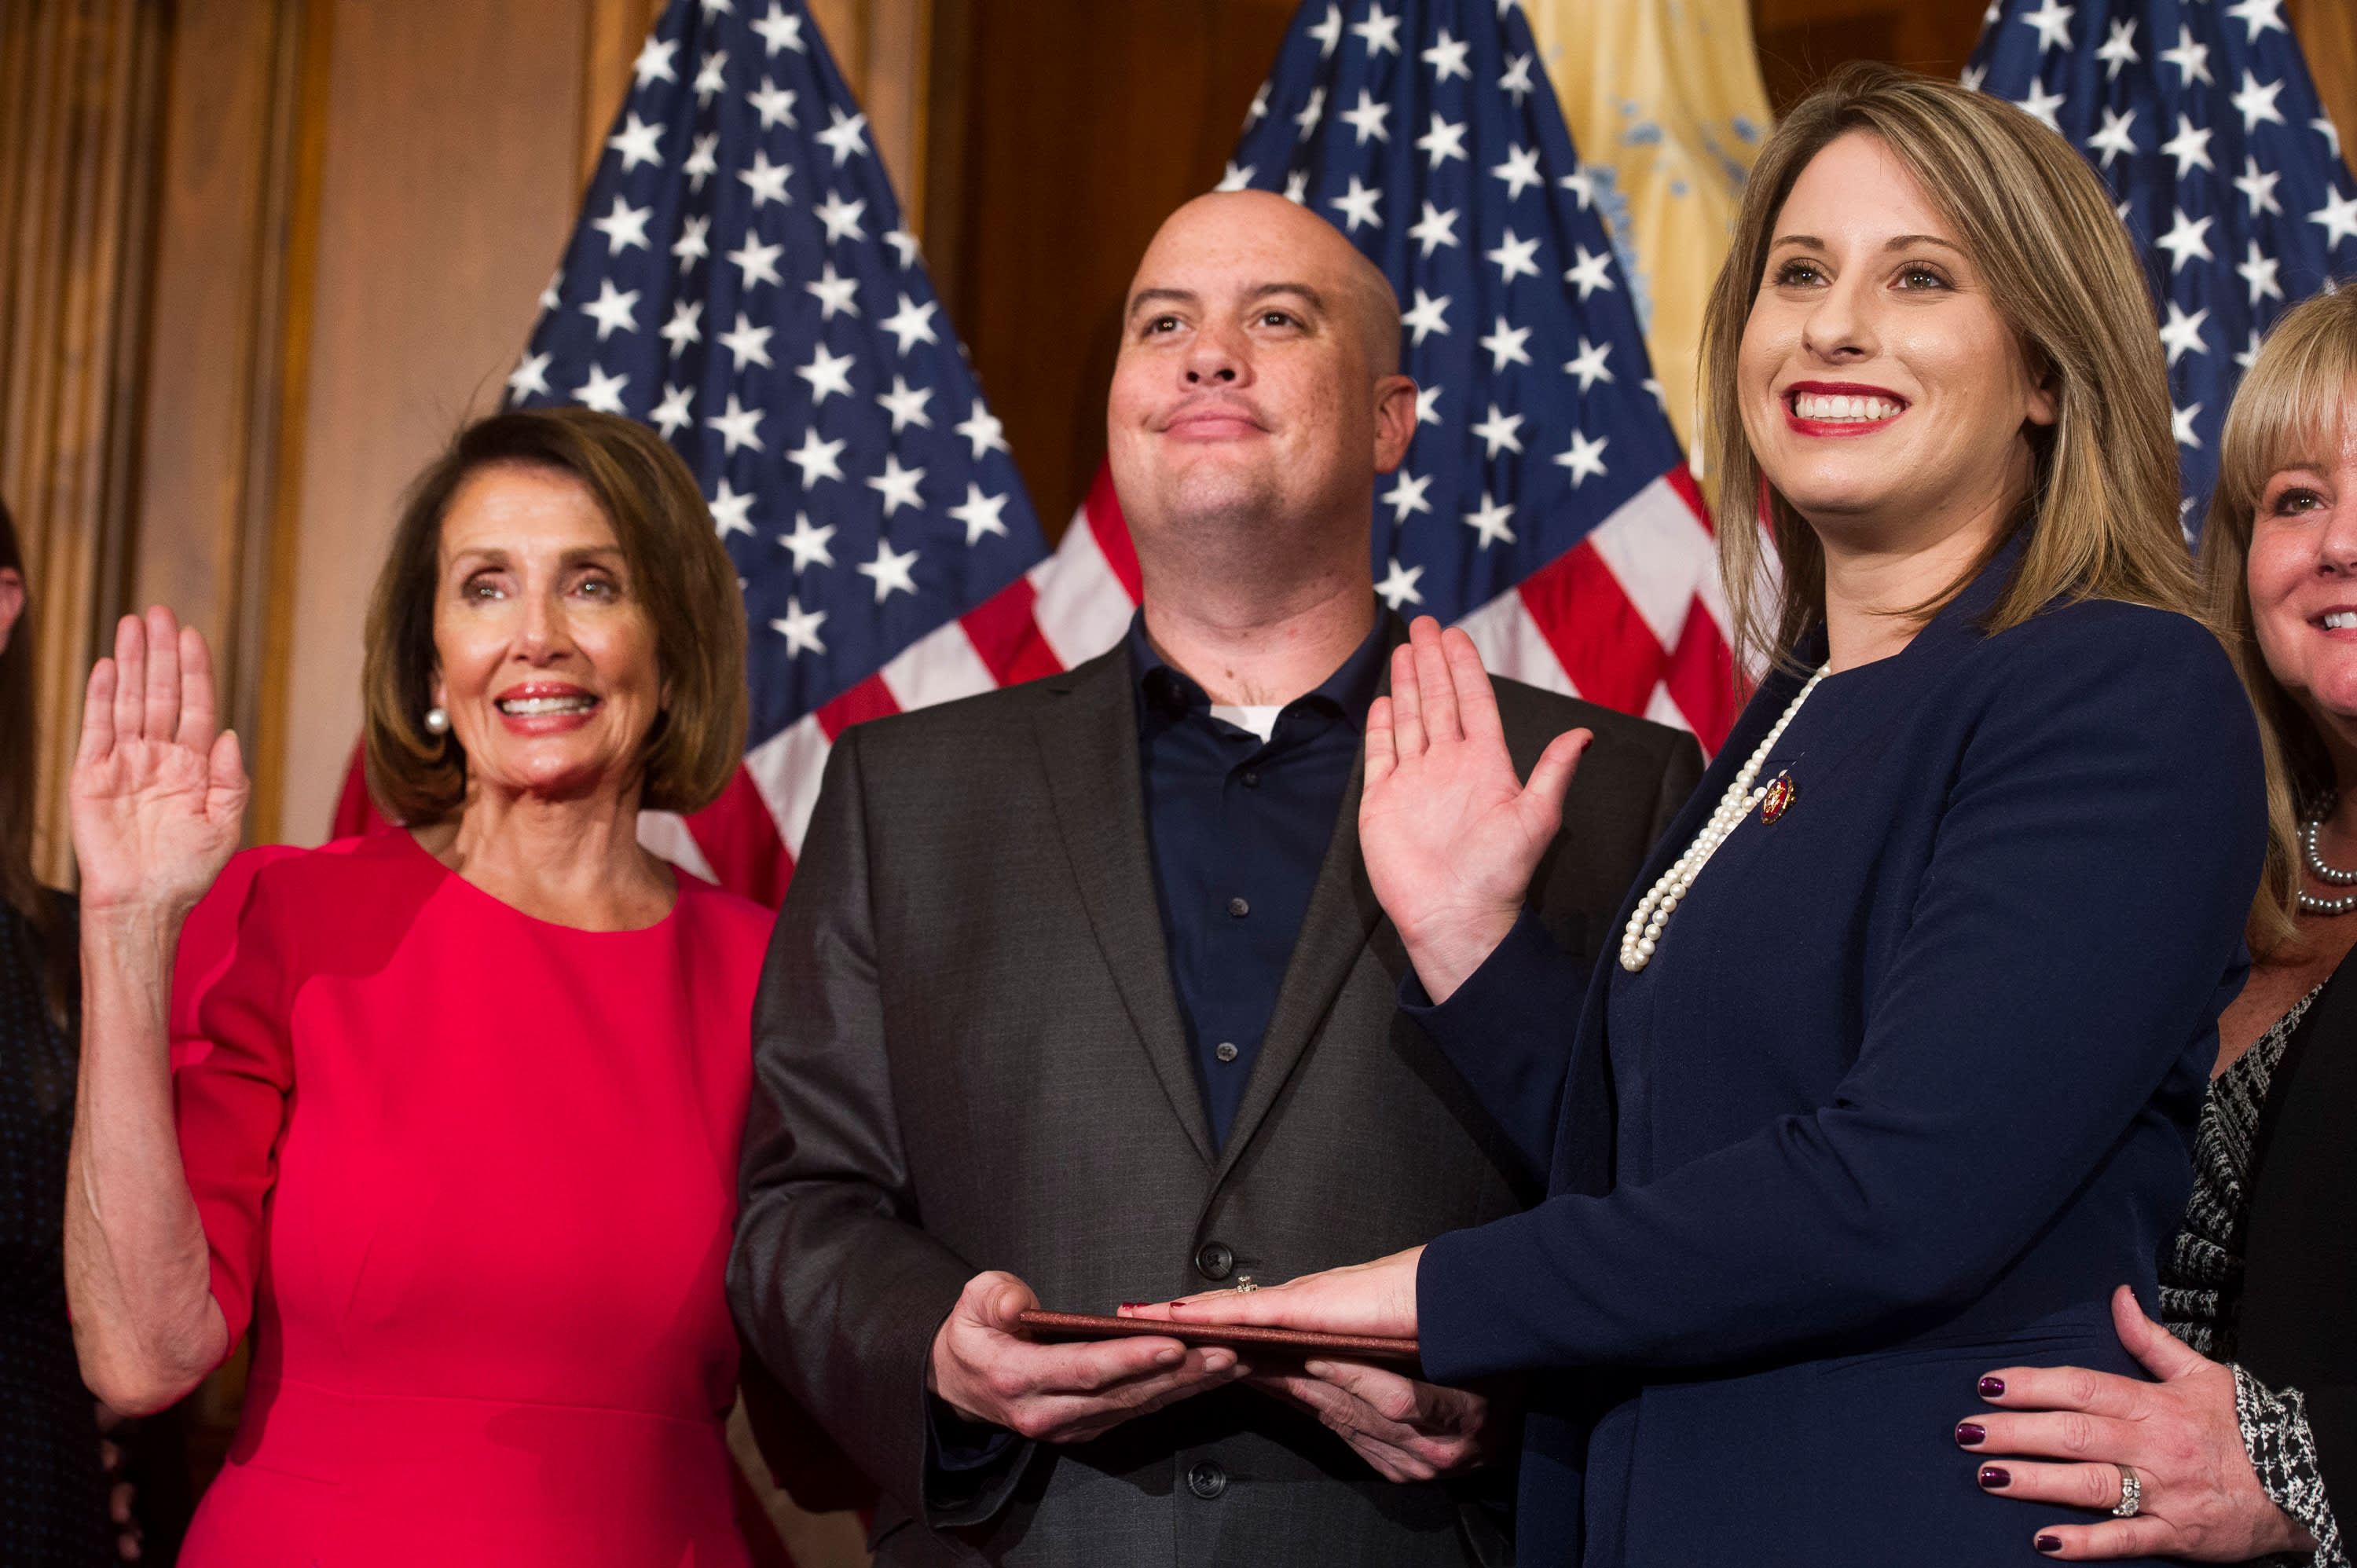 Rep. Katie Hill's husband claimed his computer was 'hacked' before her private photos appeared online, report says